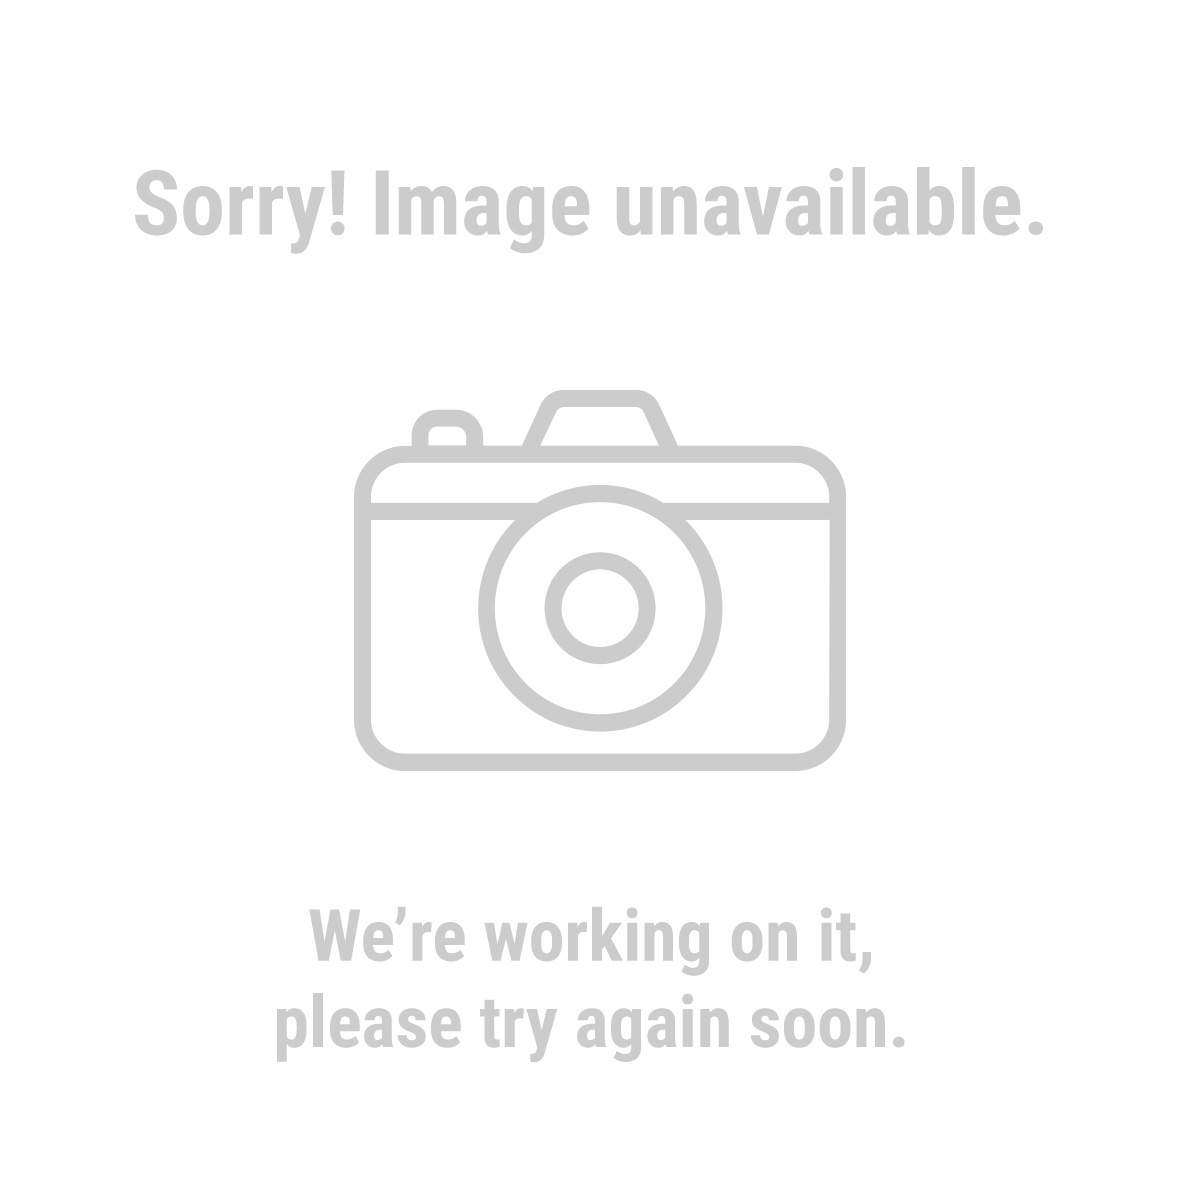 HARDY 61436 Latex Coated Work Gloves Medium